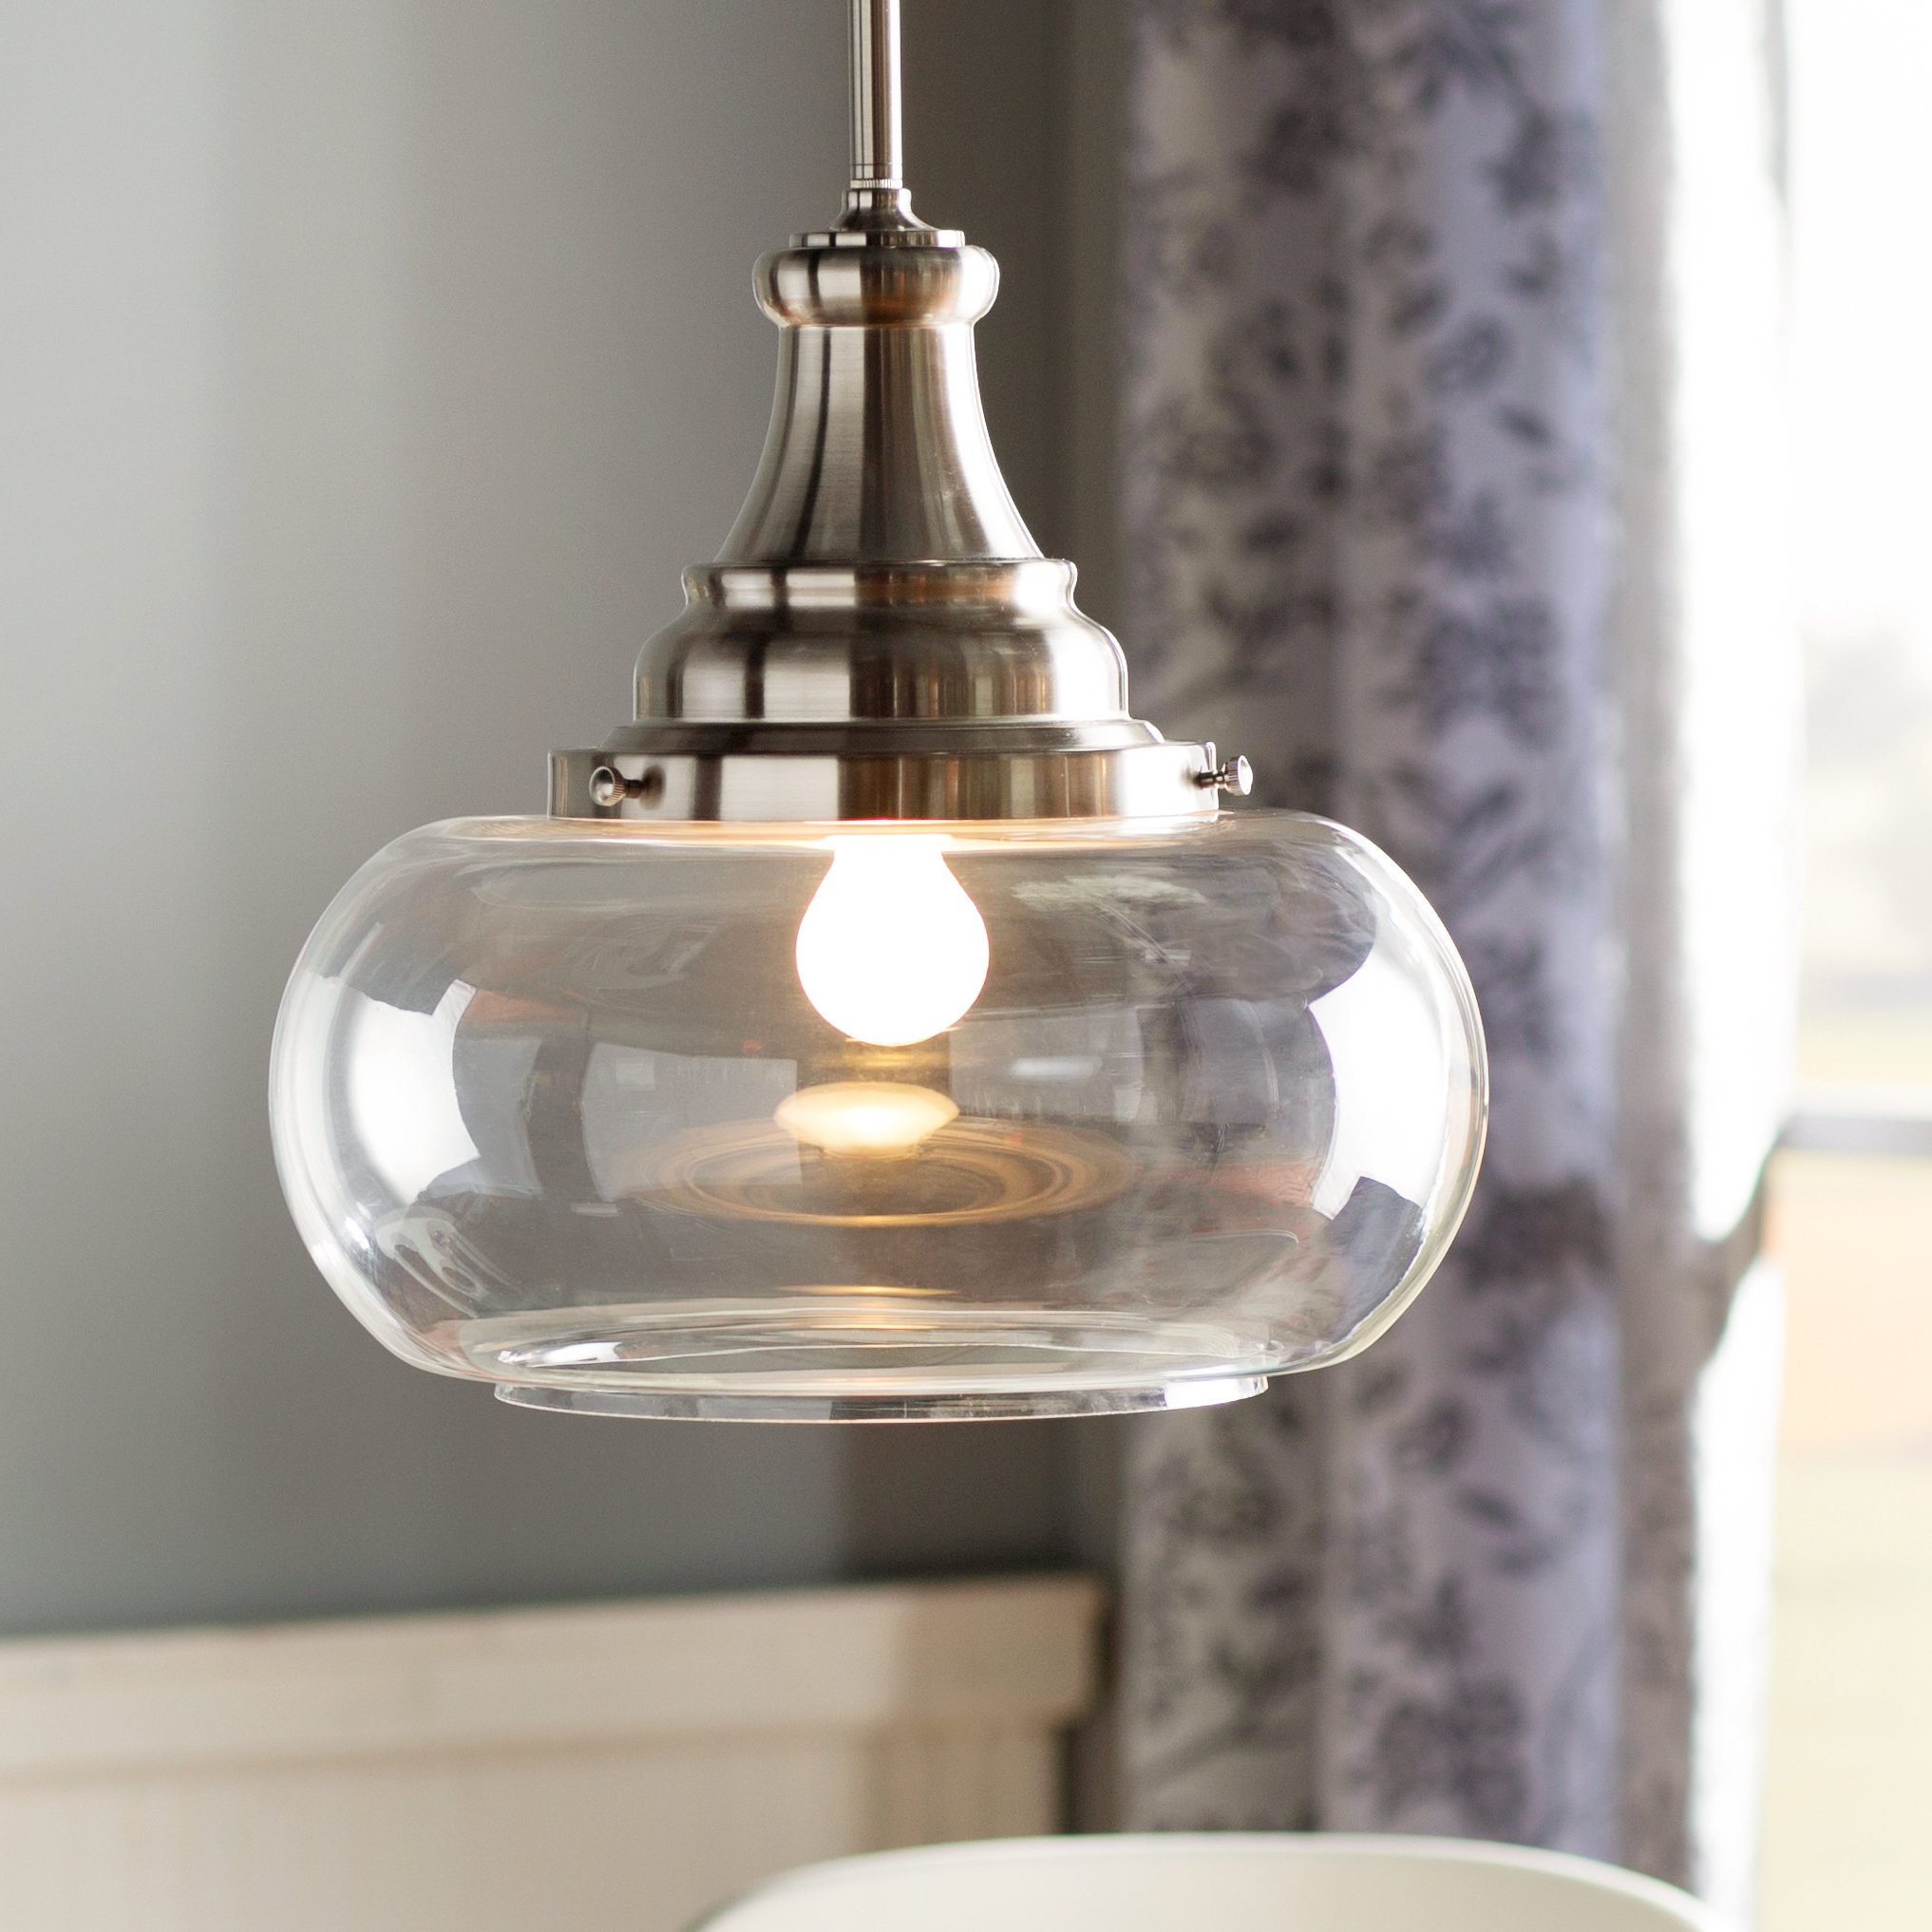 Well Liked 1 Light Single Dome Pendant With Abordale 1 Light Single Dome Pendants (View 3 of 20)